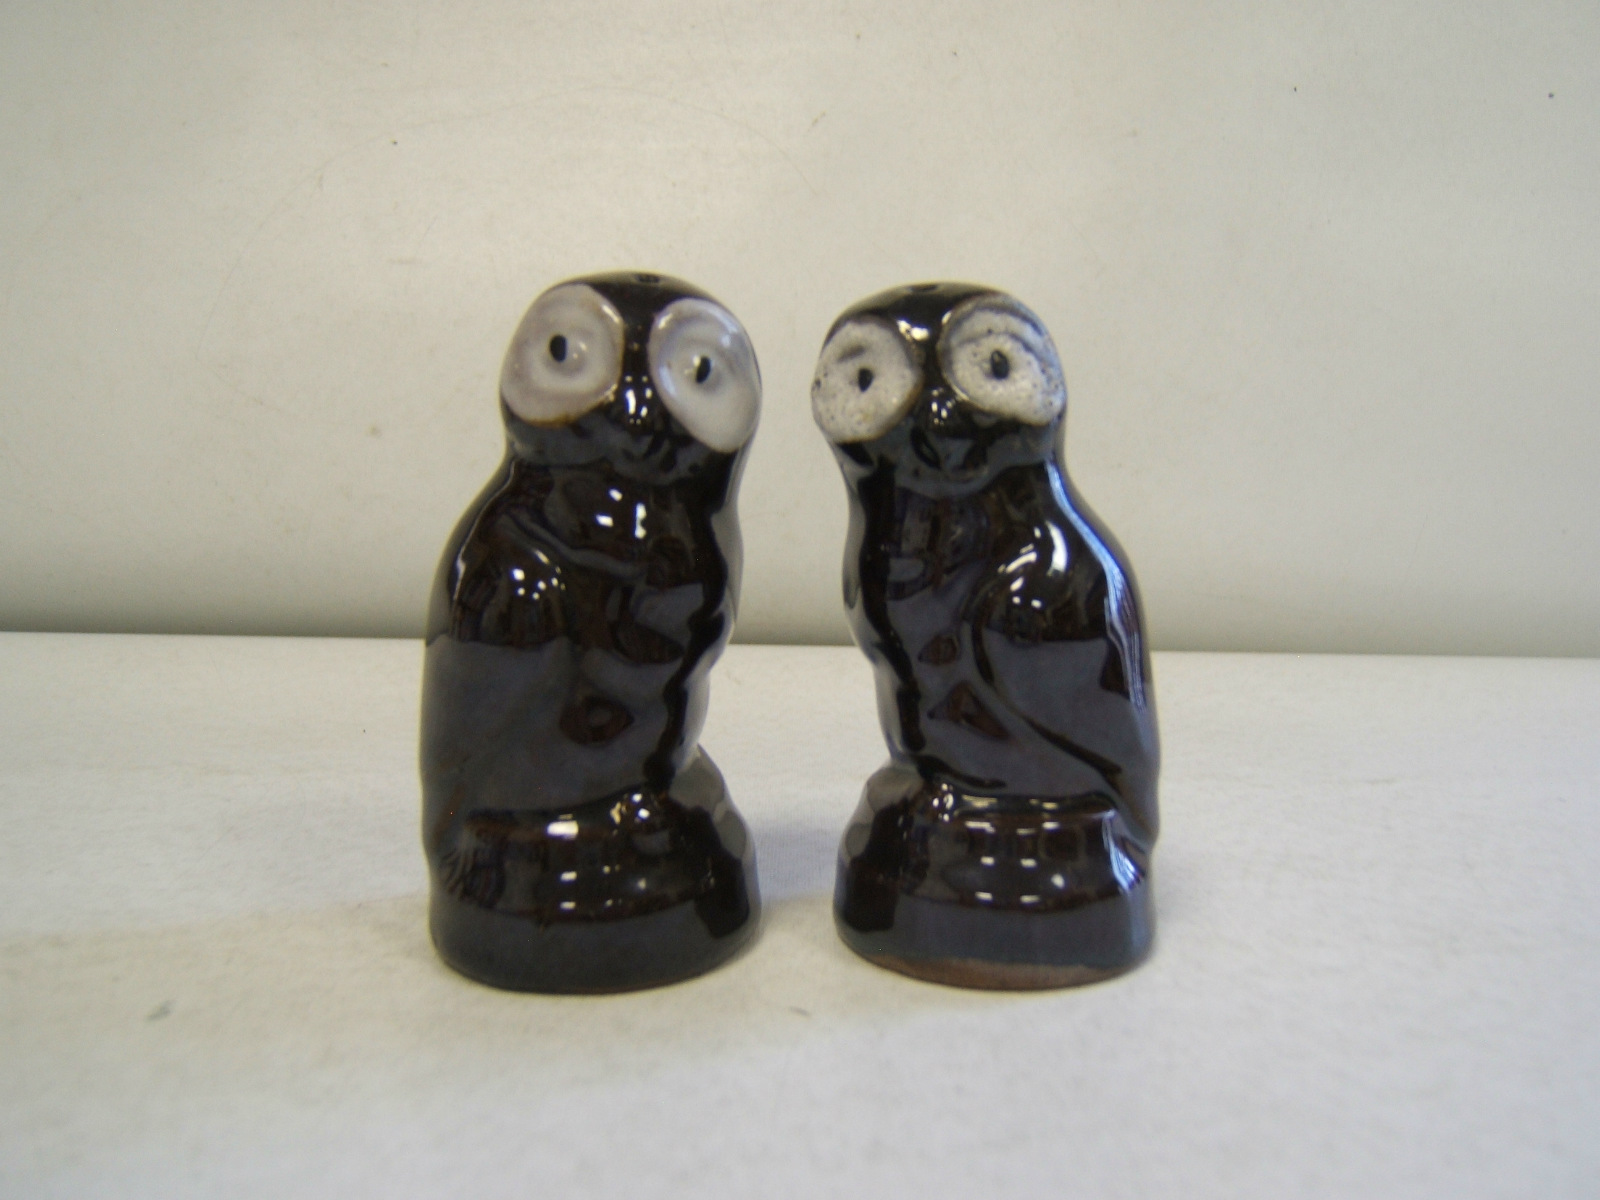 Details about owl shaped salt and pepper shakers japan ceramic brown